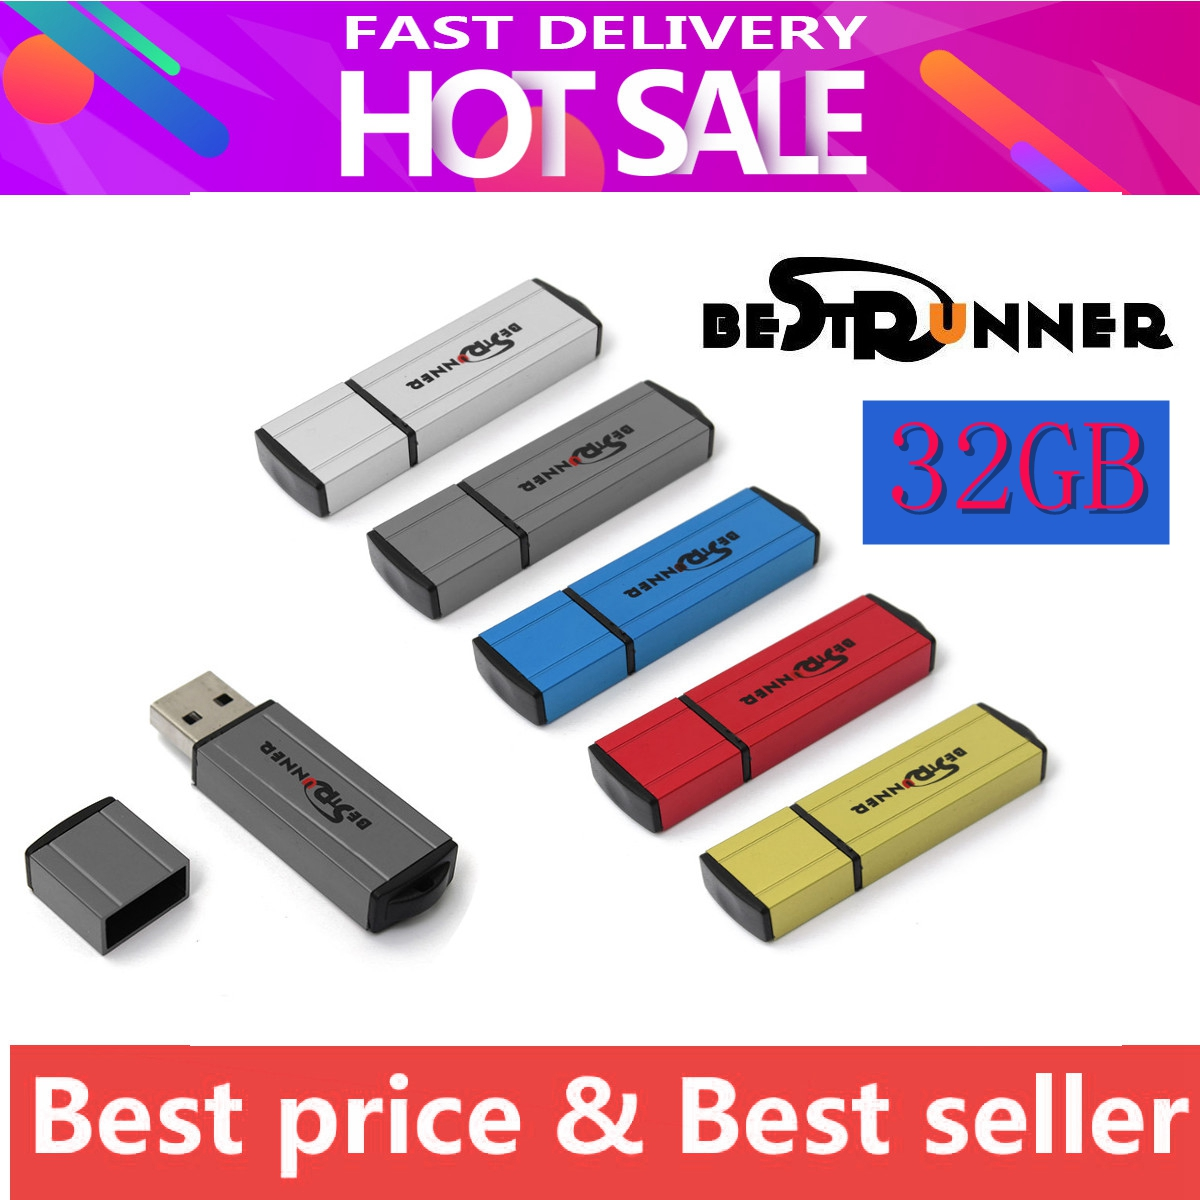 BESTRUNNER 32GB Square BESTRUNNER Shaped USB 2.0 Flash Drive Stick Memory Thumb Pen Storage U-Disk Multi Color